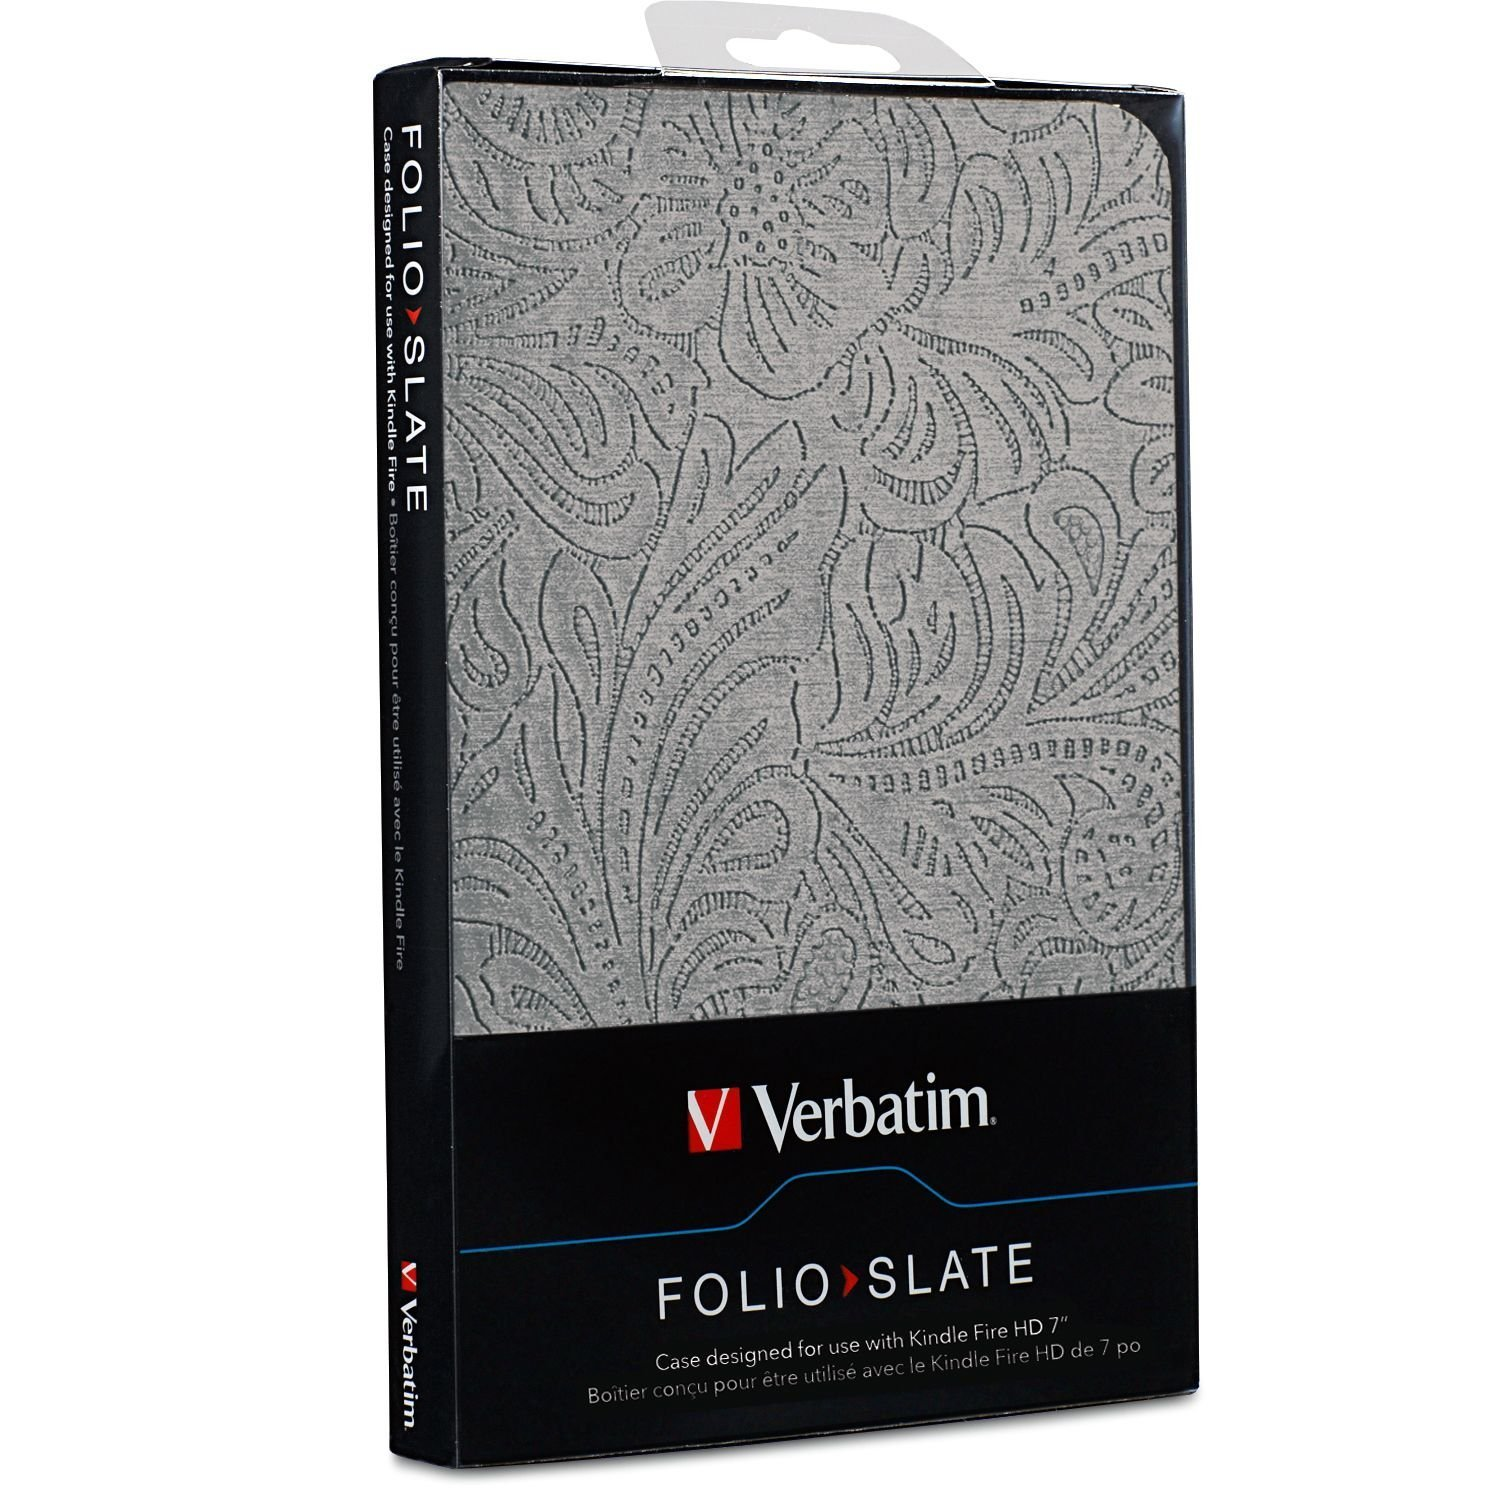 "Verbatim Folio Case for Kindle Fire HD 7"" - Slate Silver image"